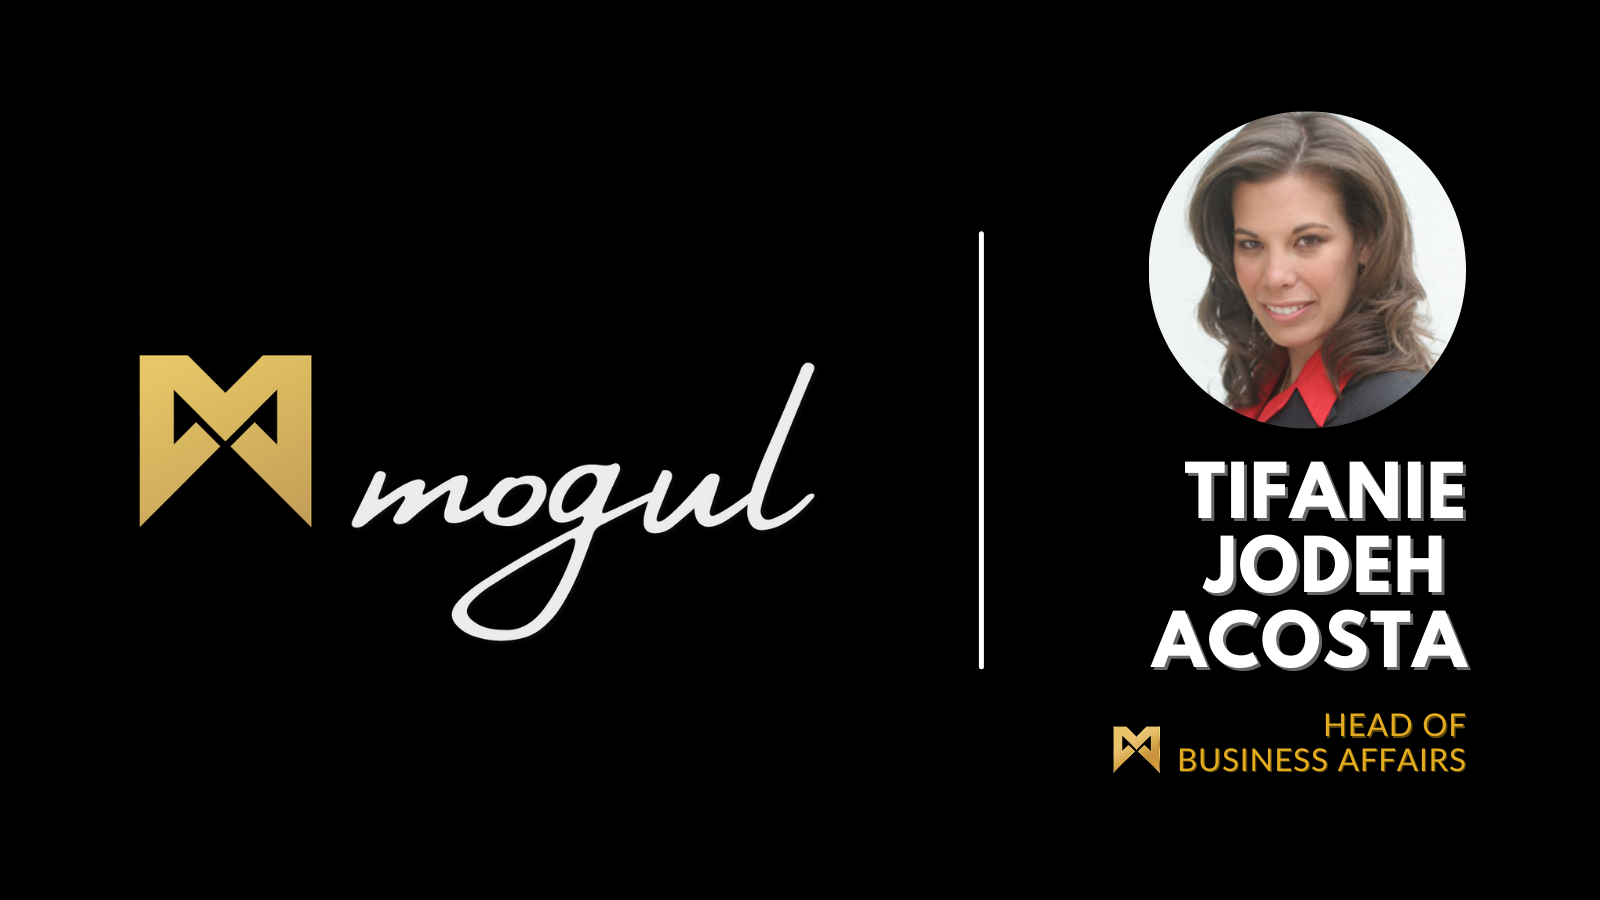 Entertainment Lawyer Tifanie Jodeh Acosta Joins Mogul Productions as Head of Business Affairs